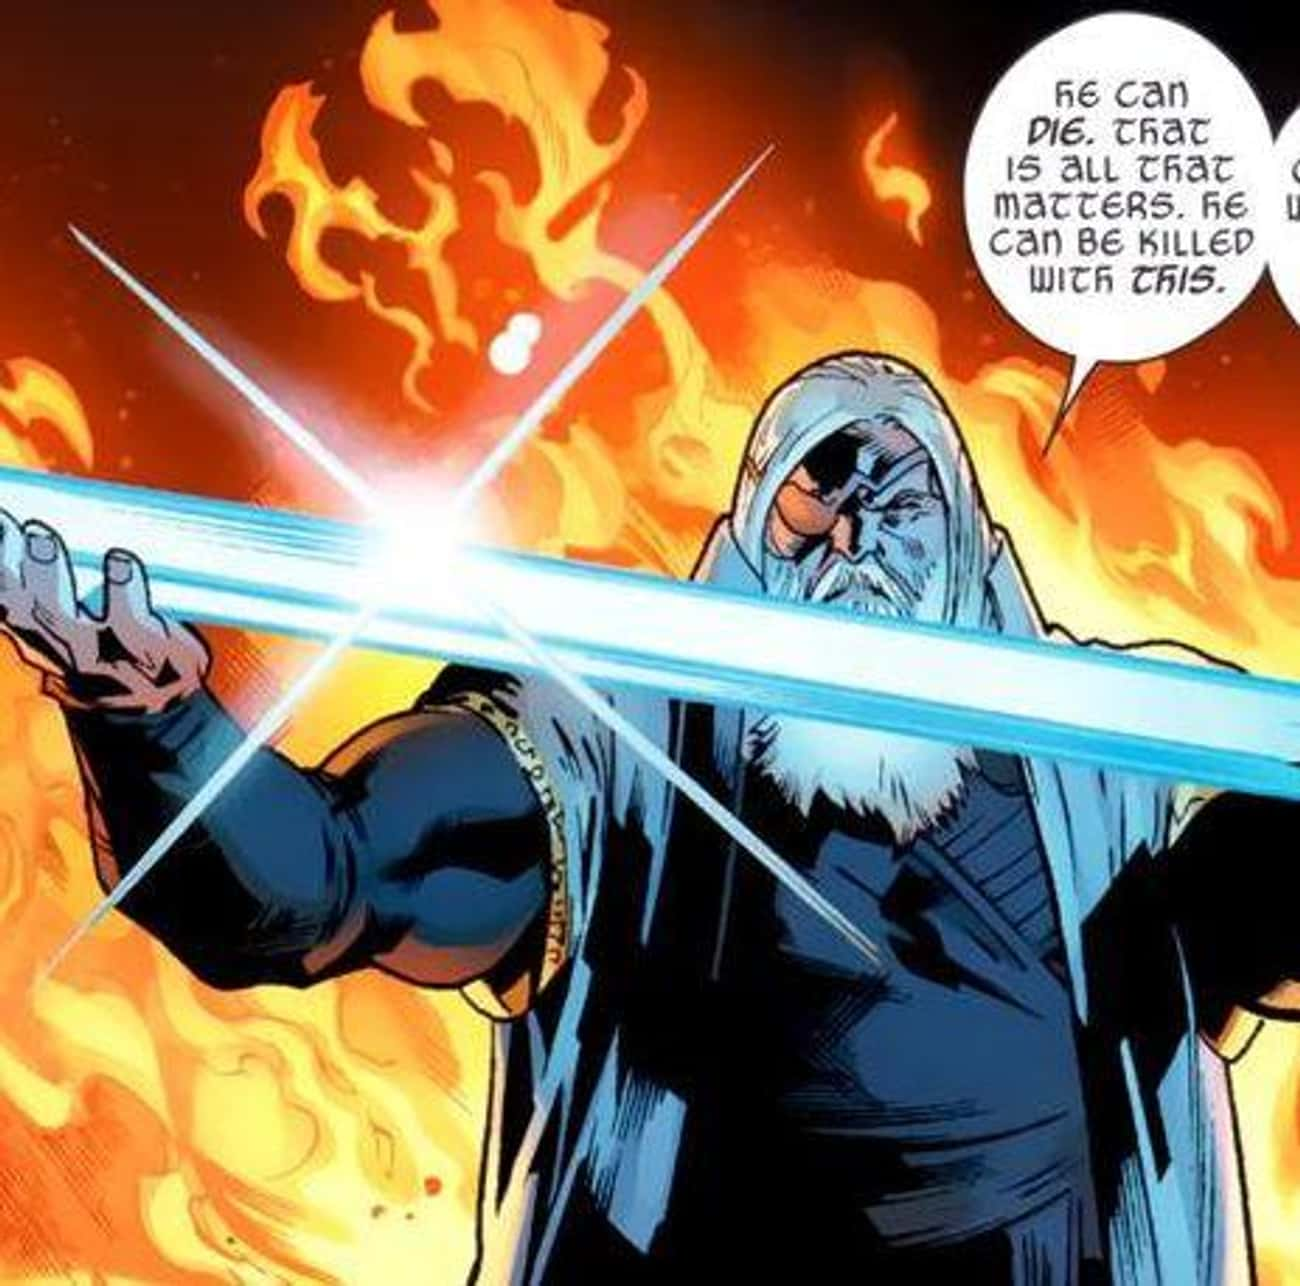 Odinsword is listed (or ranked) 2 on the list The Most Powerful Weapons In The Marvel Universe, Ranked By Destructive Force